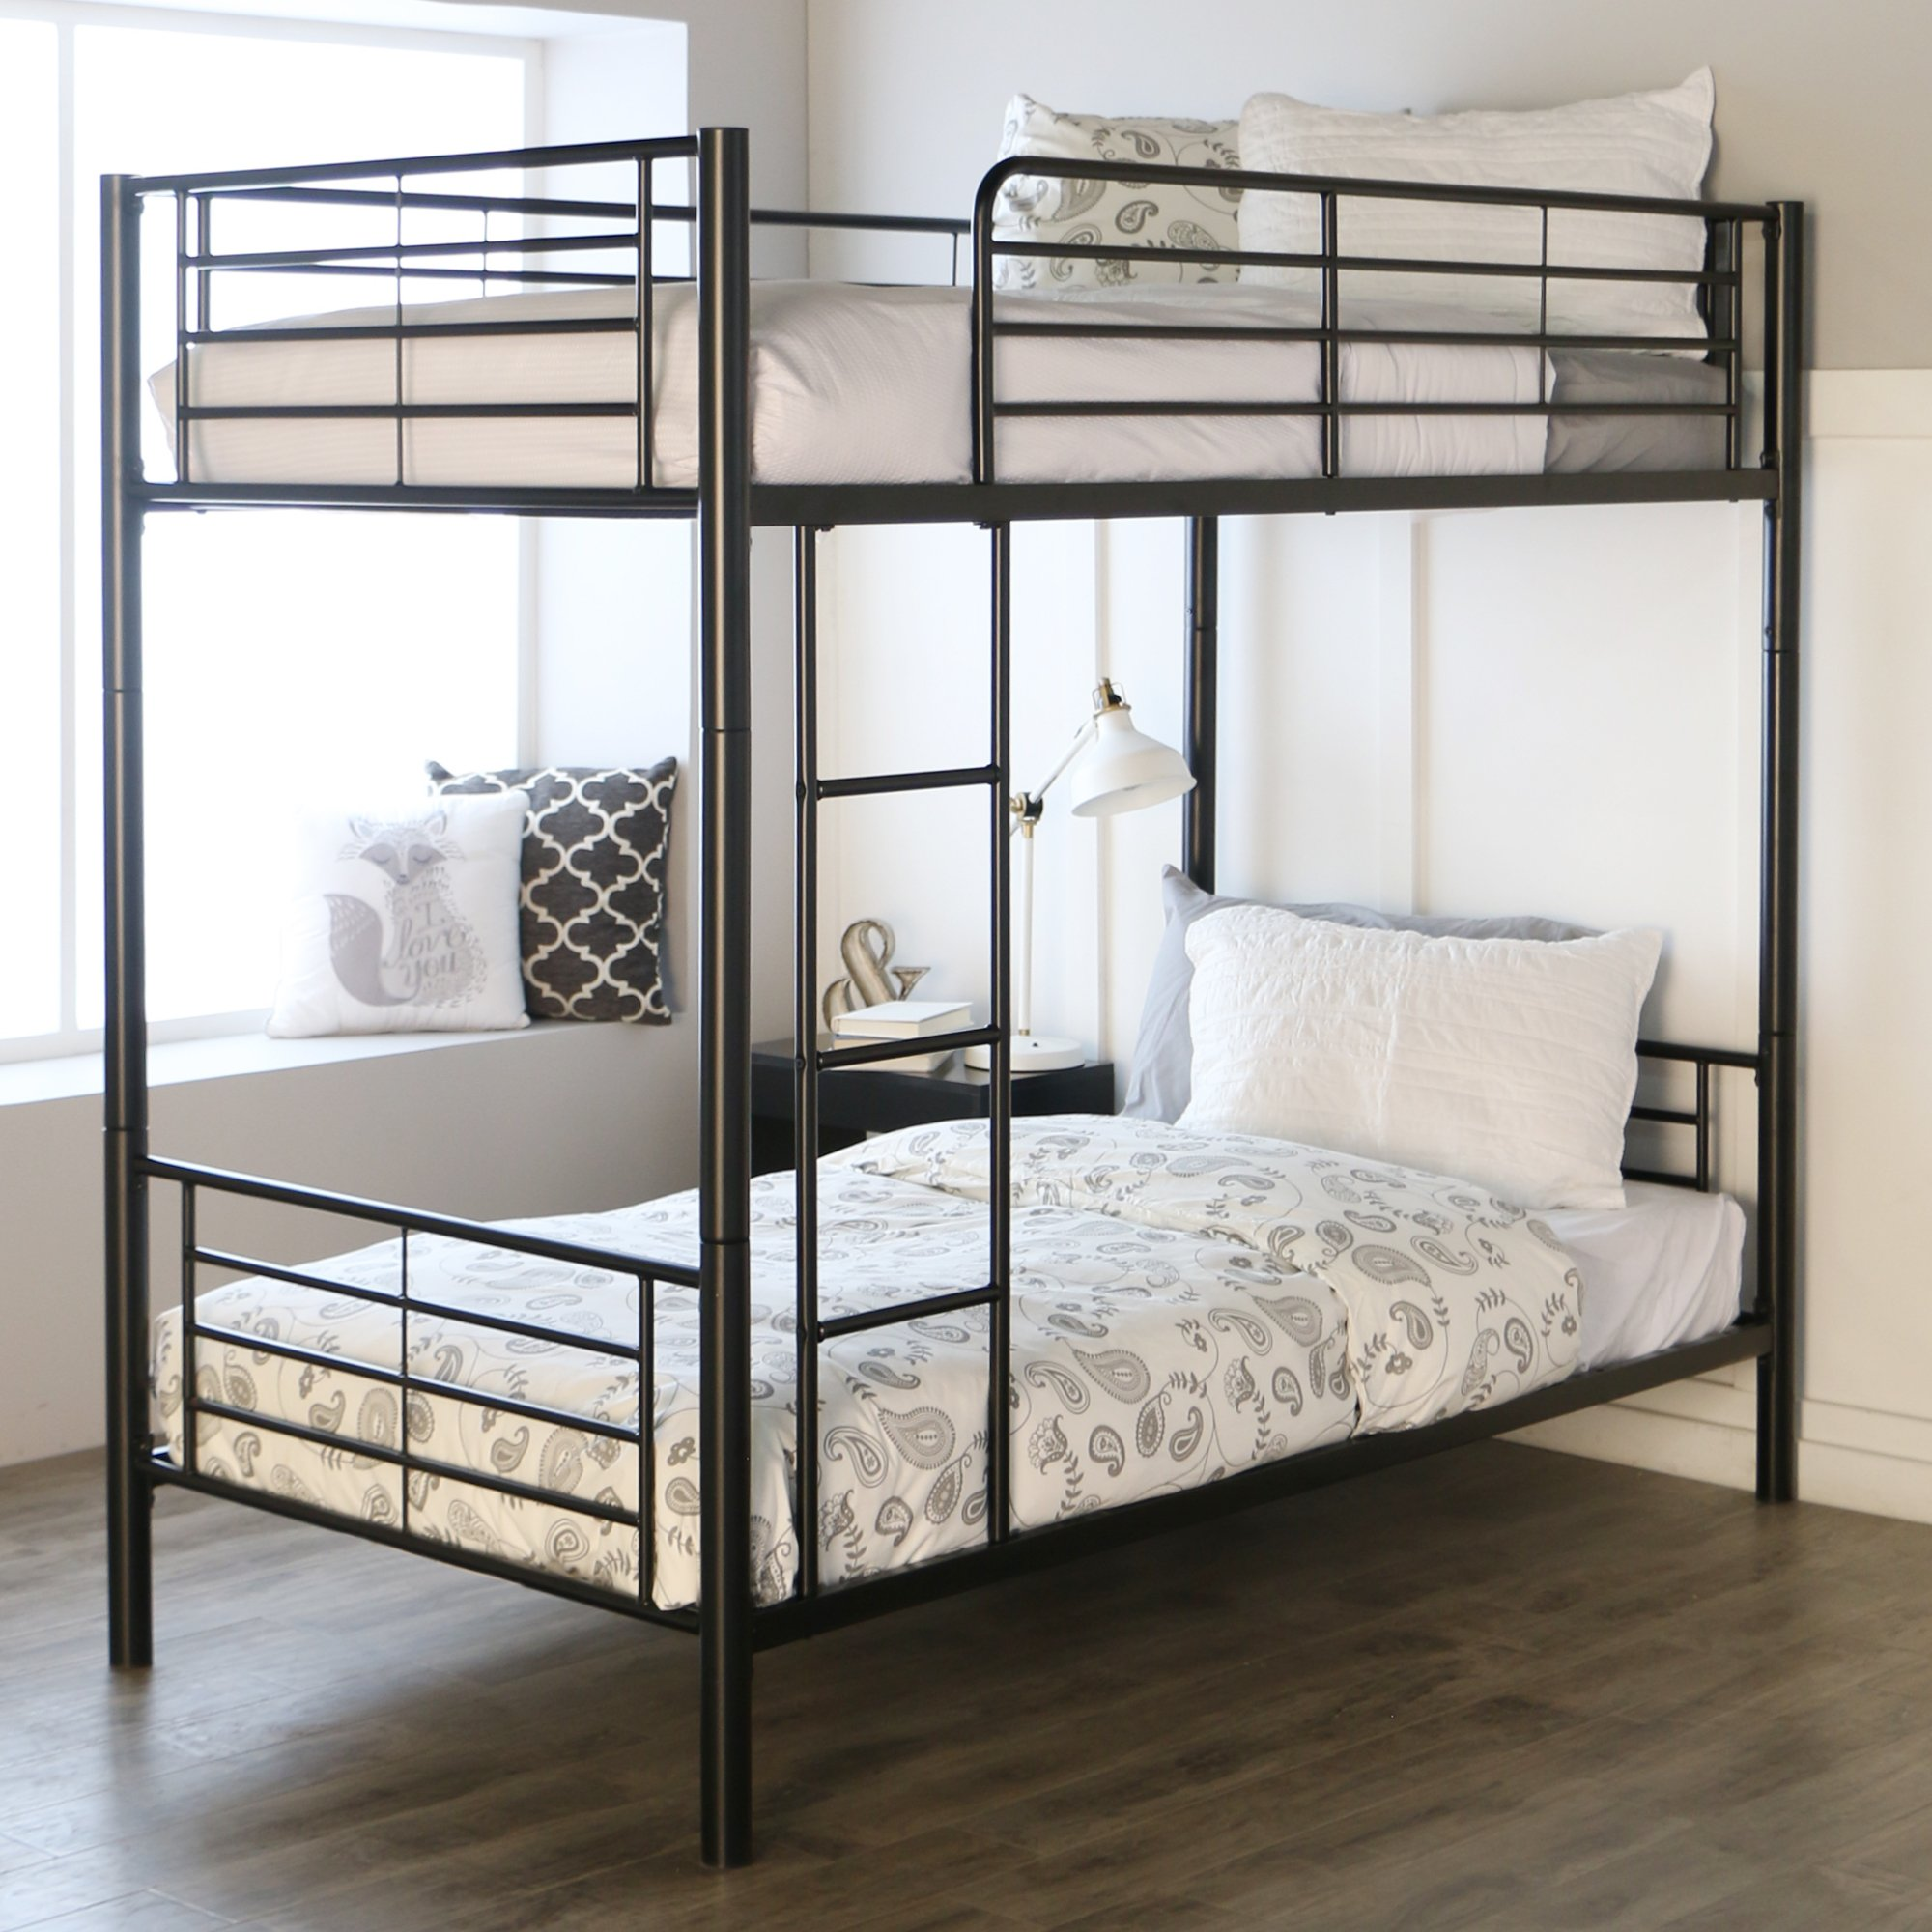 Sturdy Metal Twin-over-Twin Bunk Bed in Black Finish by Home Accent Furnishings (Image #1)